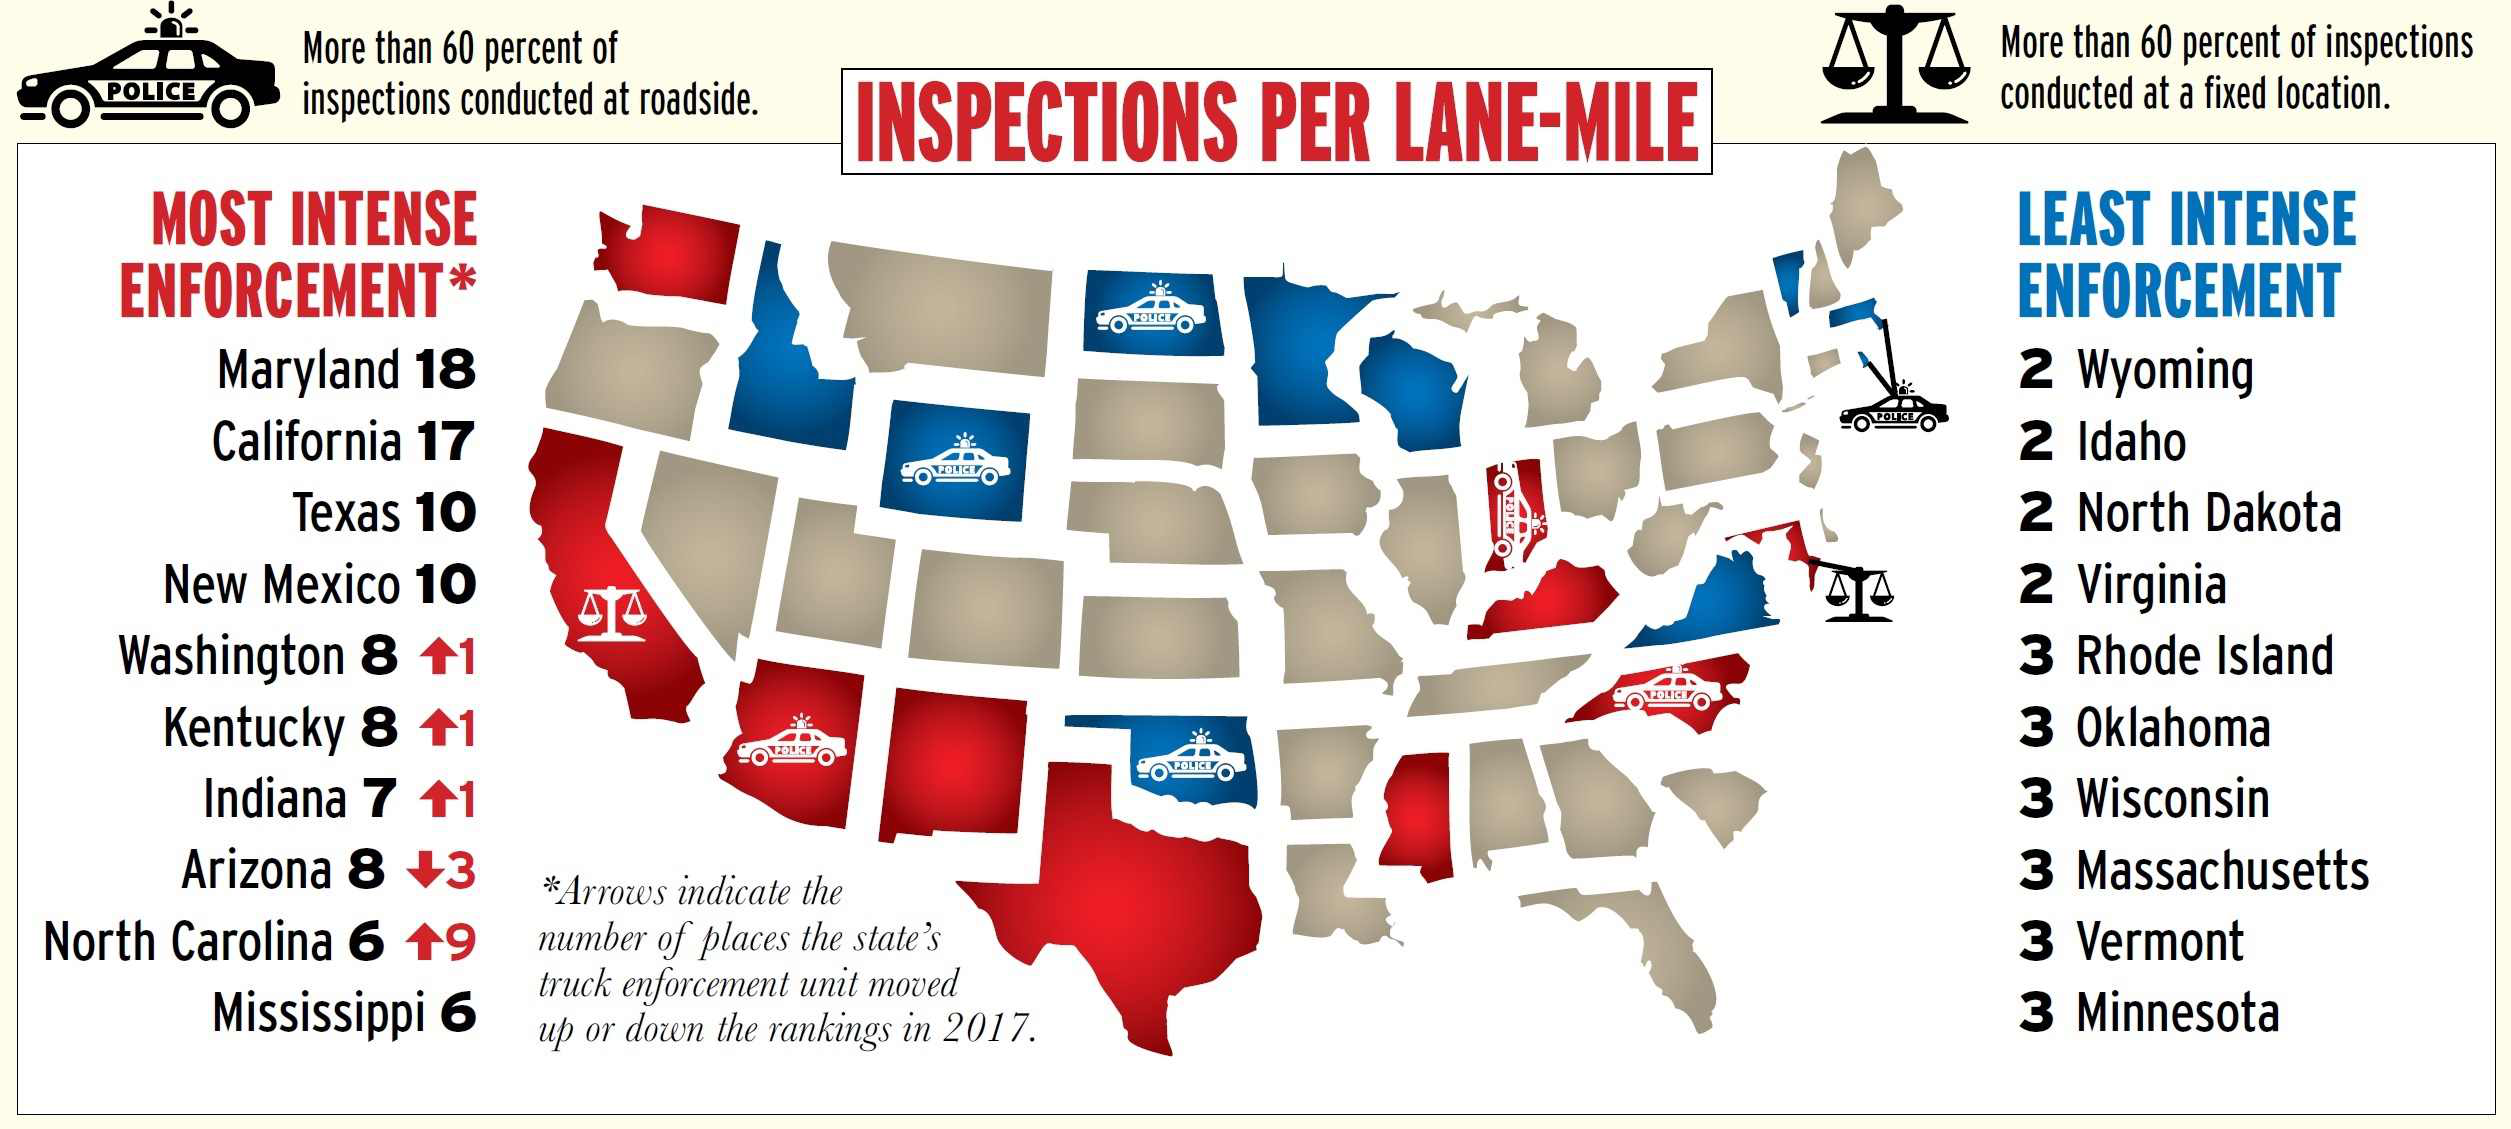 Clean inspections make up a larger share of checks